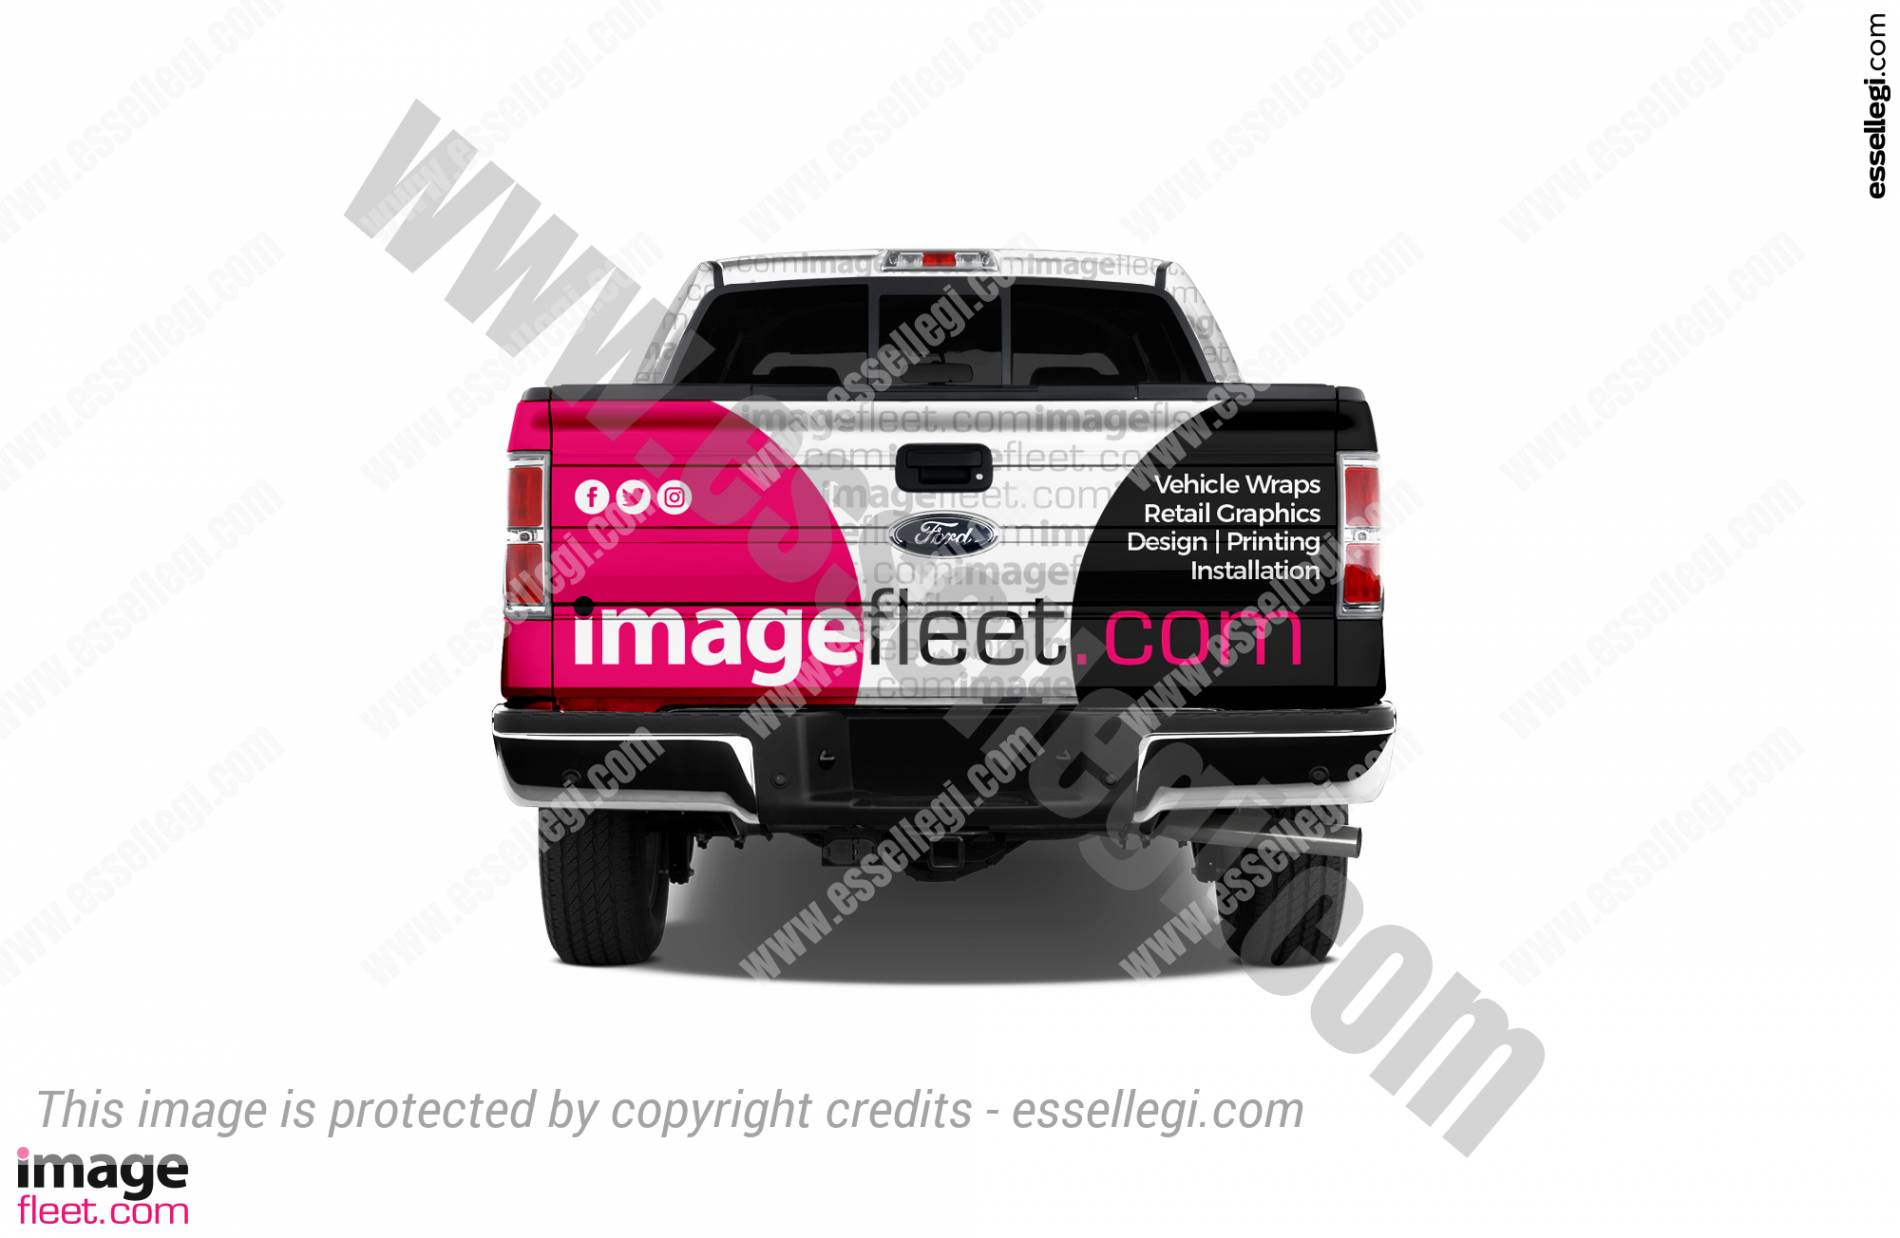 Ford F150 Wrap. Ford F150 | Truck Wrap Design by Essellegi. Truck Signs, Truck Signage, Truck Wrapping, Truck Signwriting, Truck Wrap Designer, Signs for Truck, Truck Logo, Truck Graphic by Essellegi.